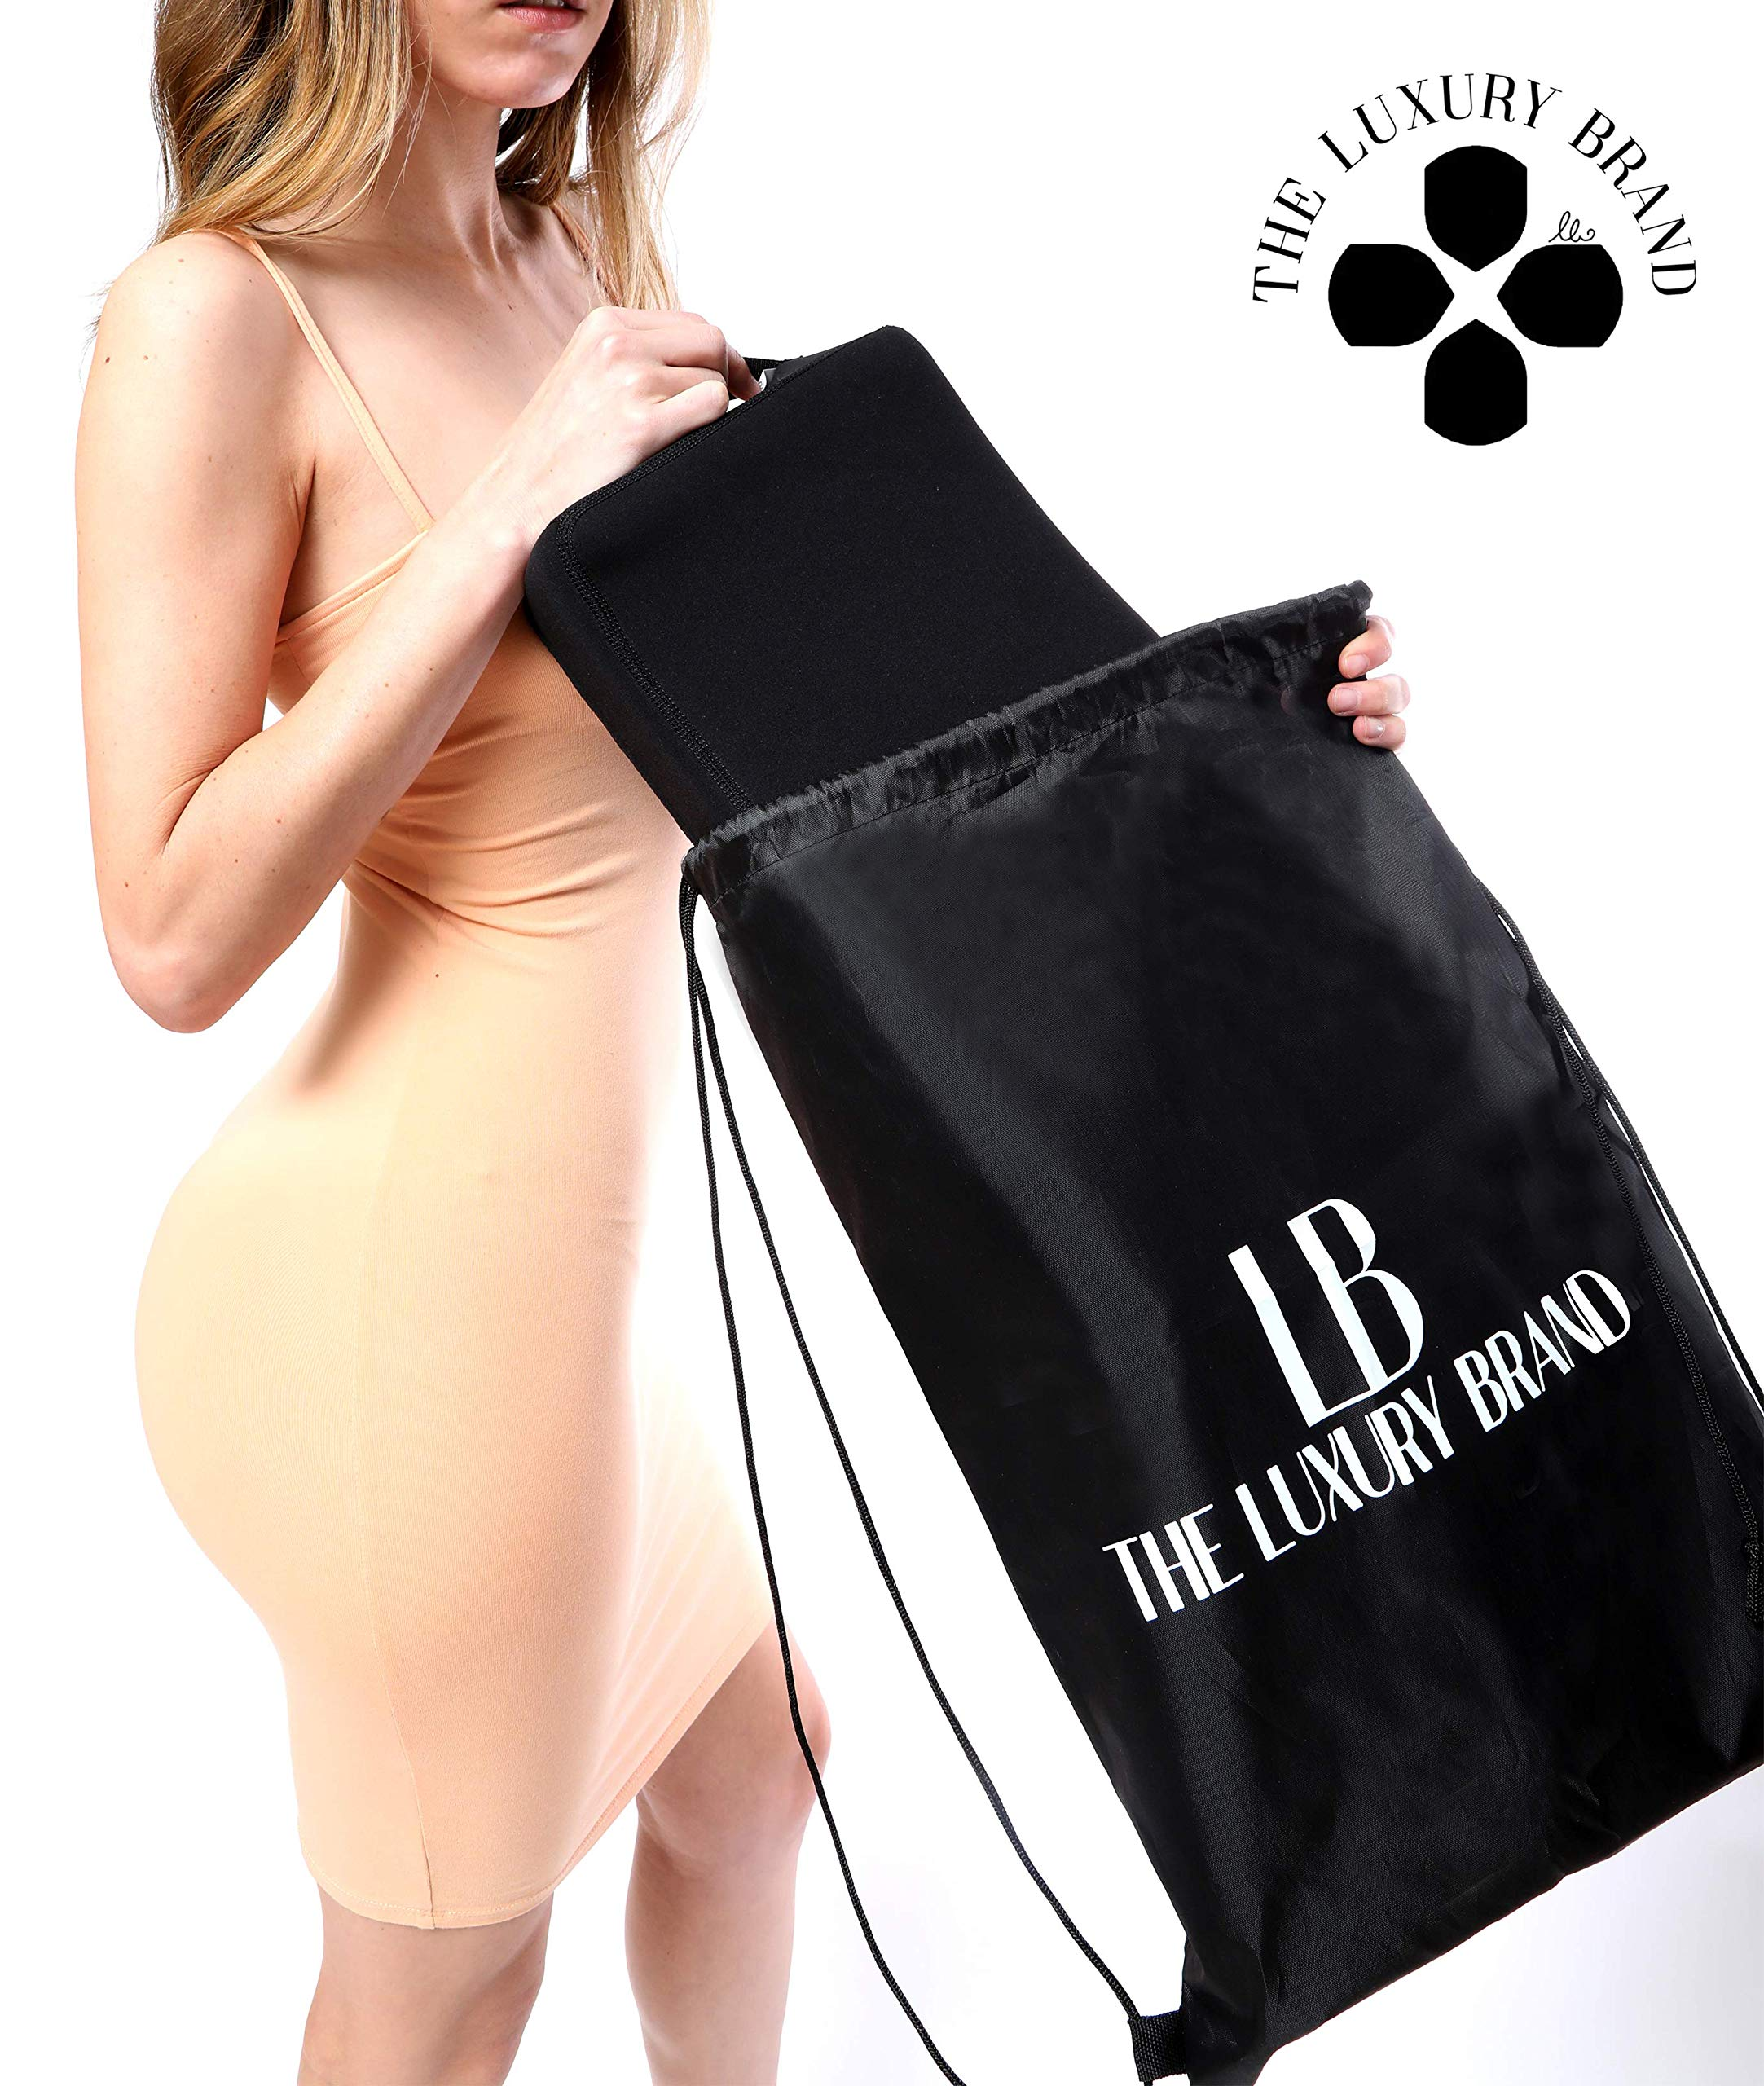 The Original Luxury BBL Booty Pillow for Post Recovery Brazilian Butt Lift: Premium & Comfortable Post Recovery Pillow - After Surgery Pillows for Buttocks + Cushion Cover/Drawstring Bag